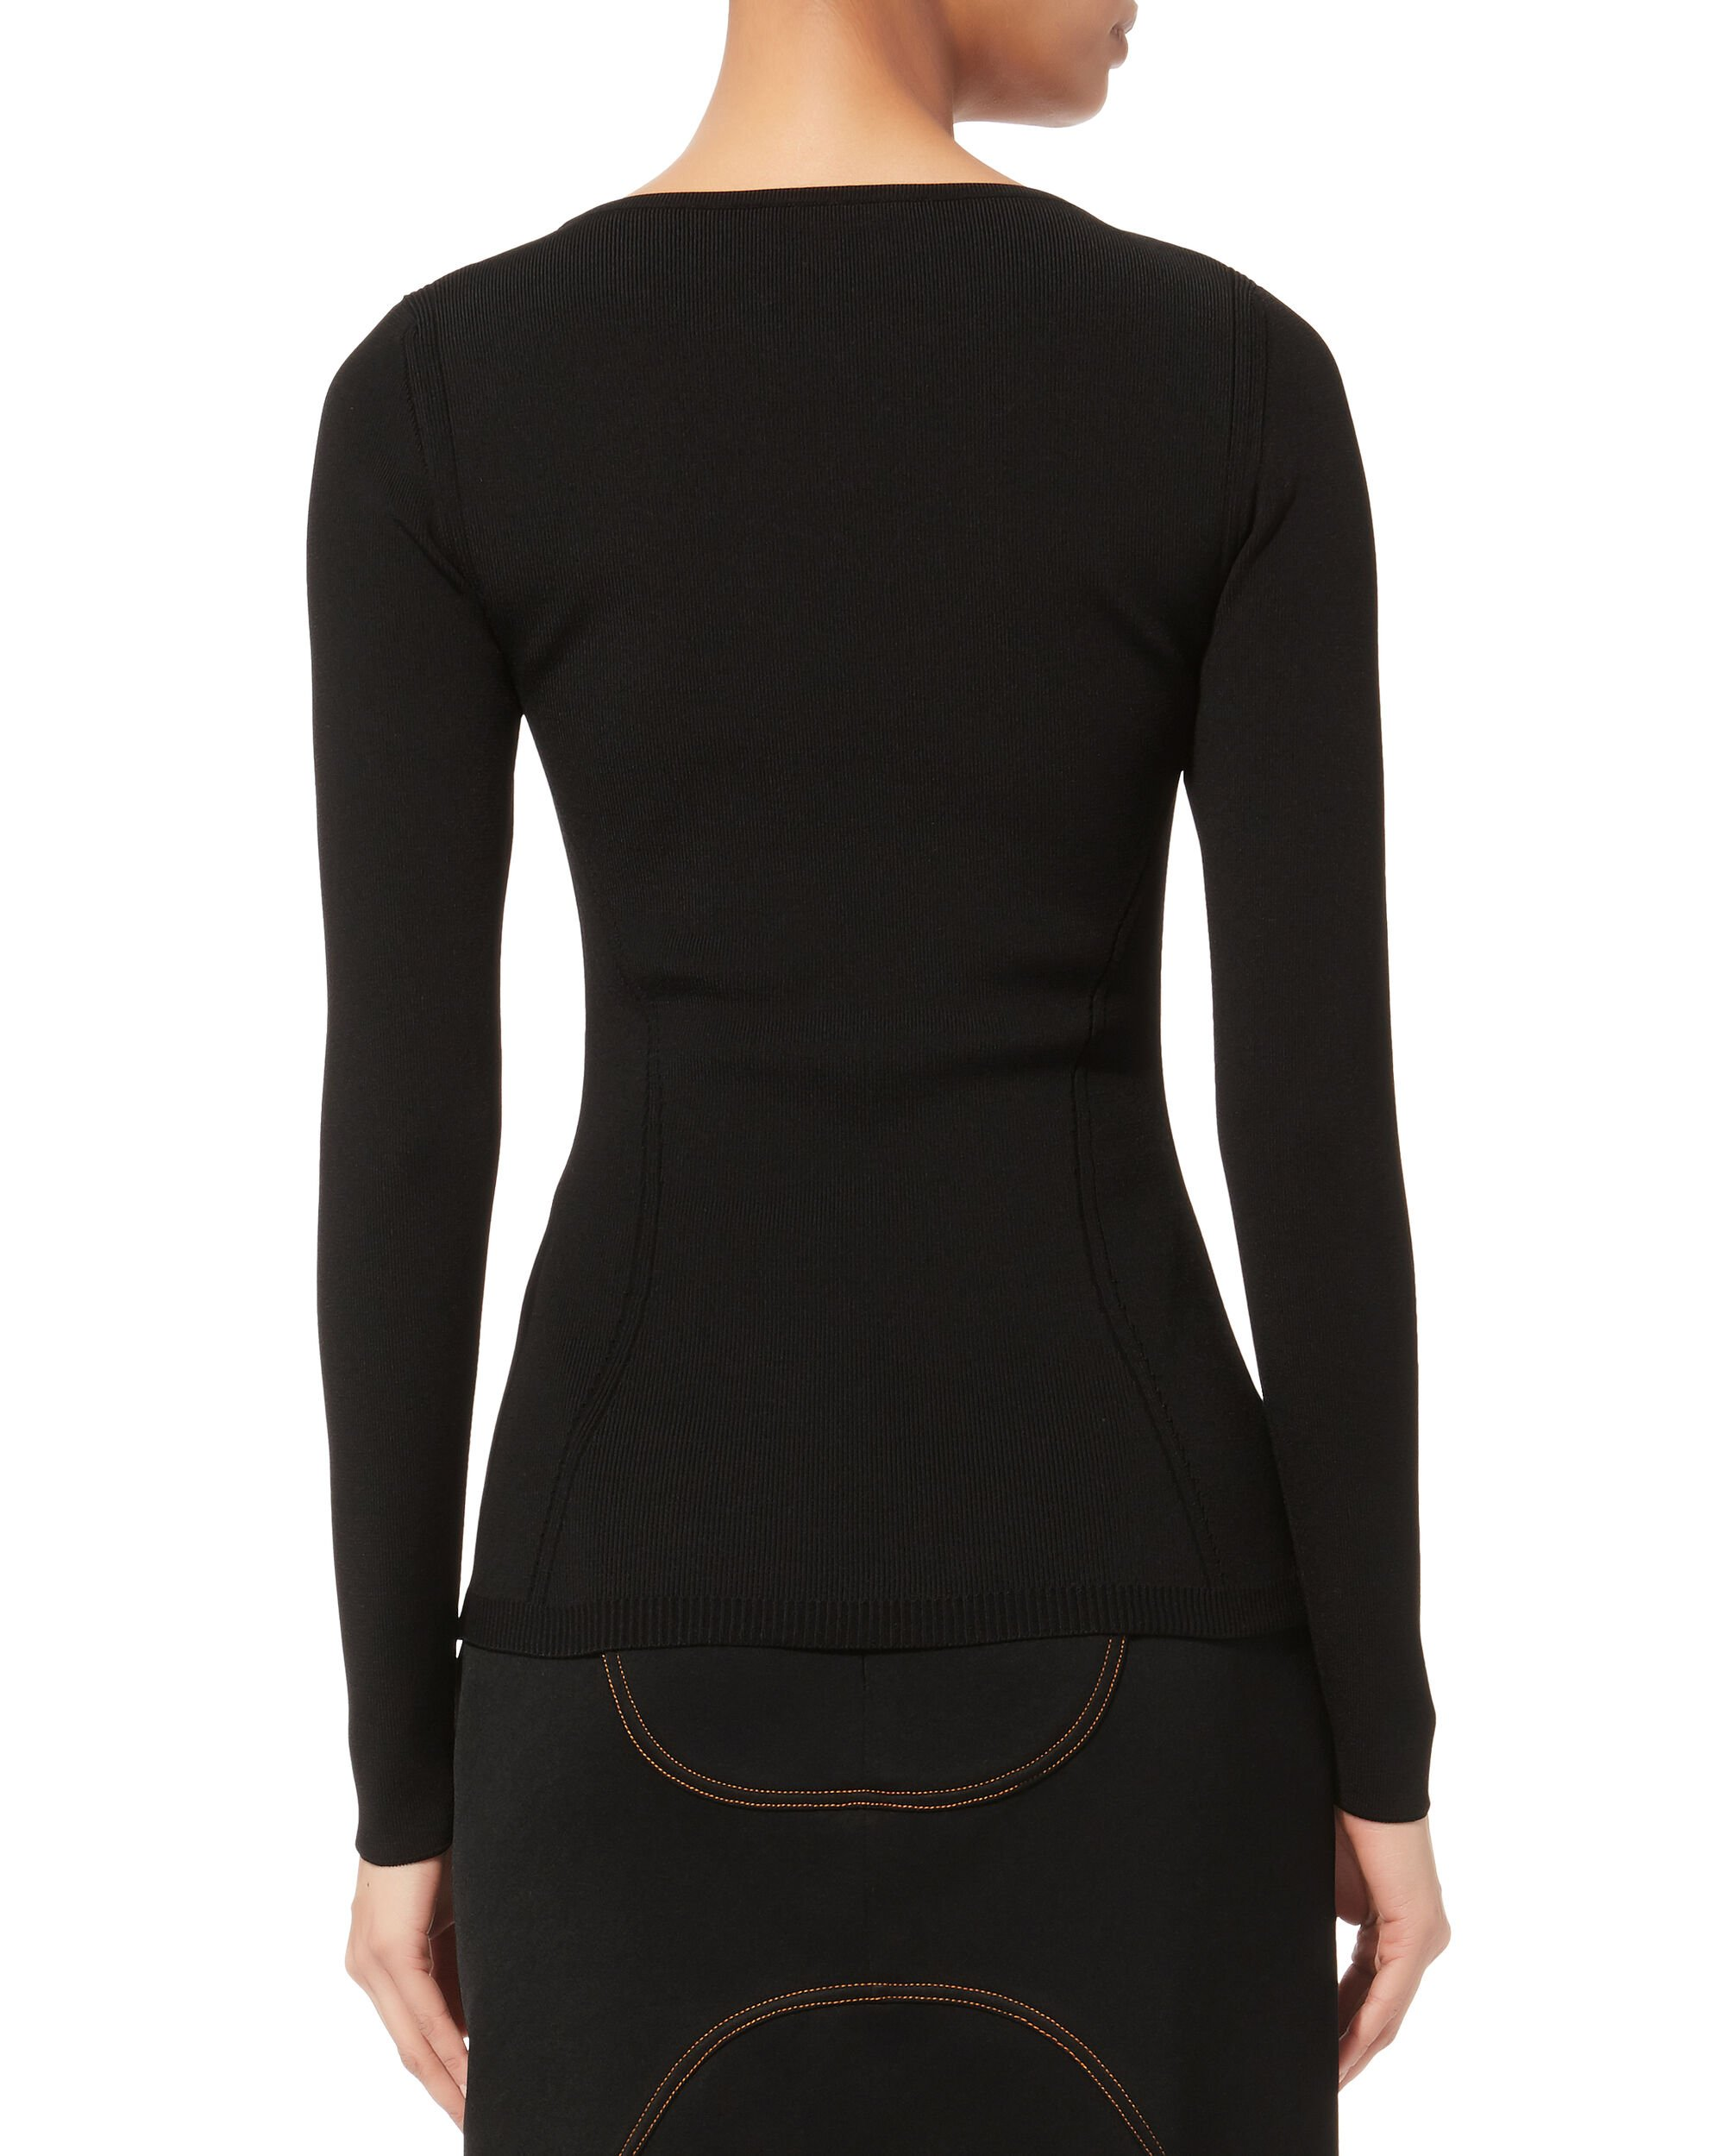 Bastia Cutout Top, BLACK, hi-res